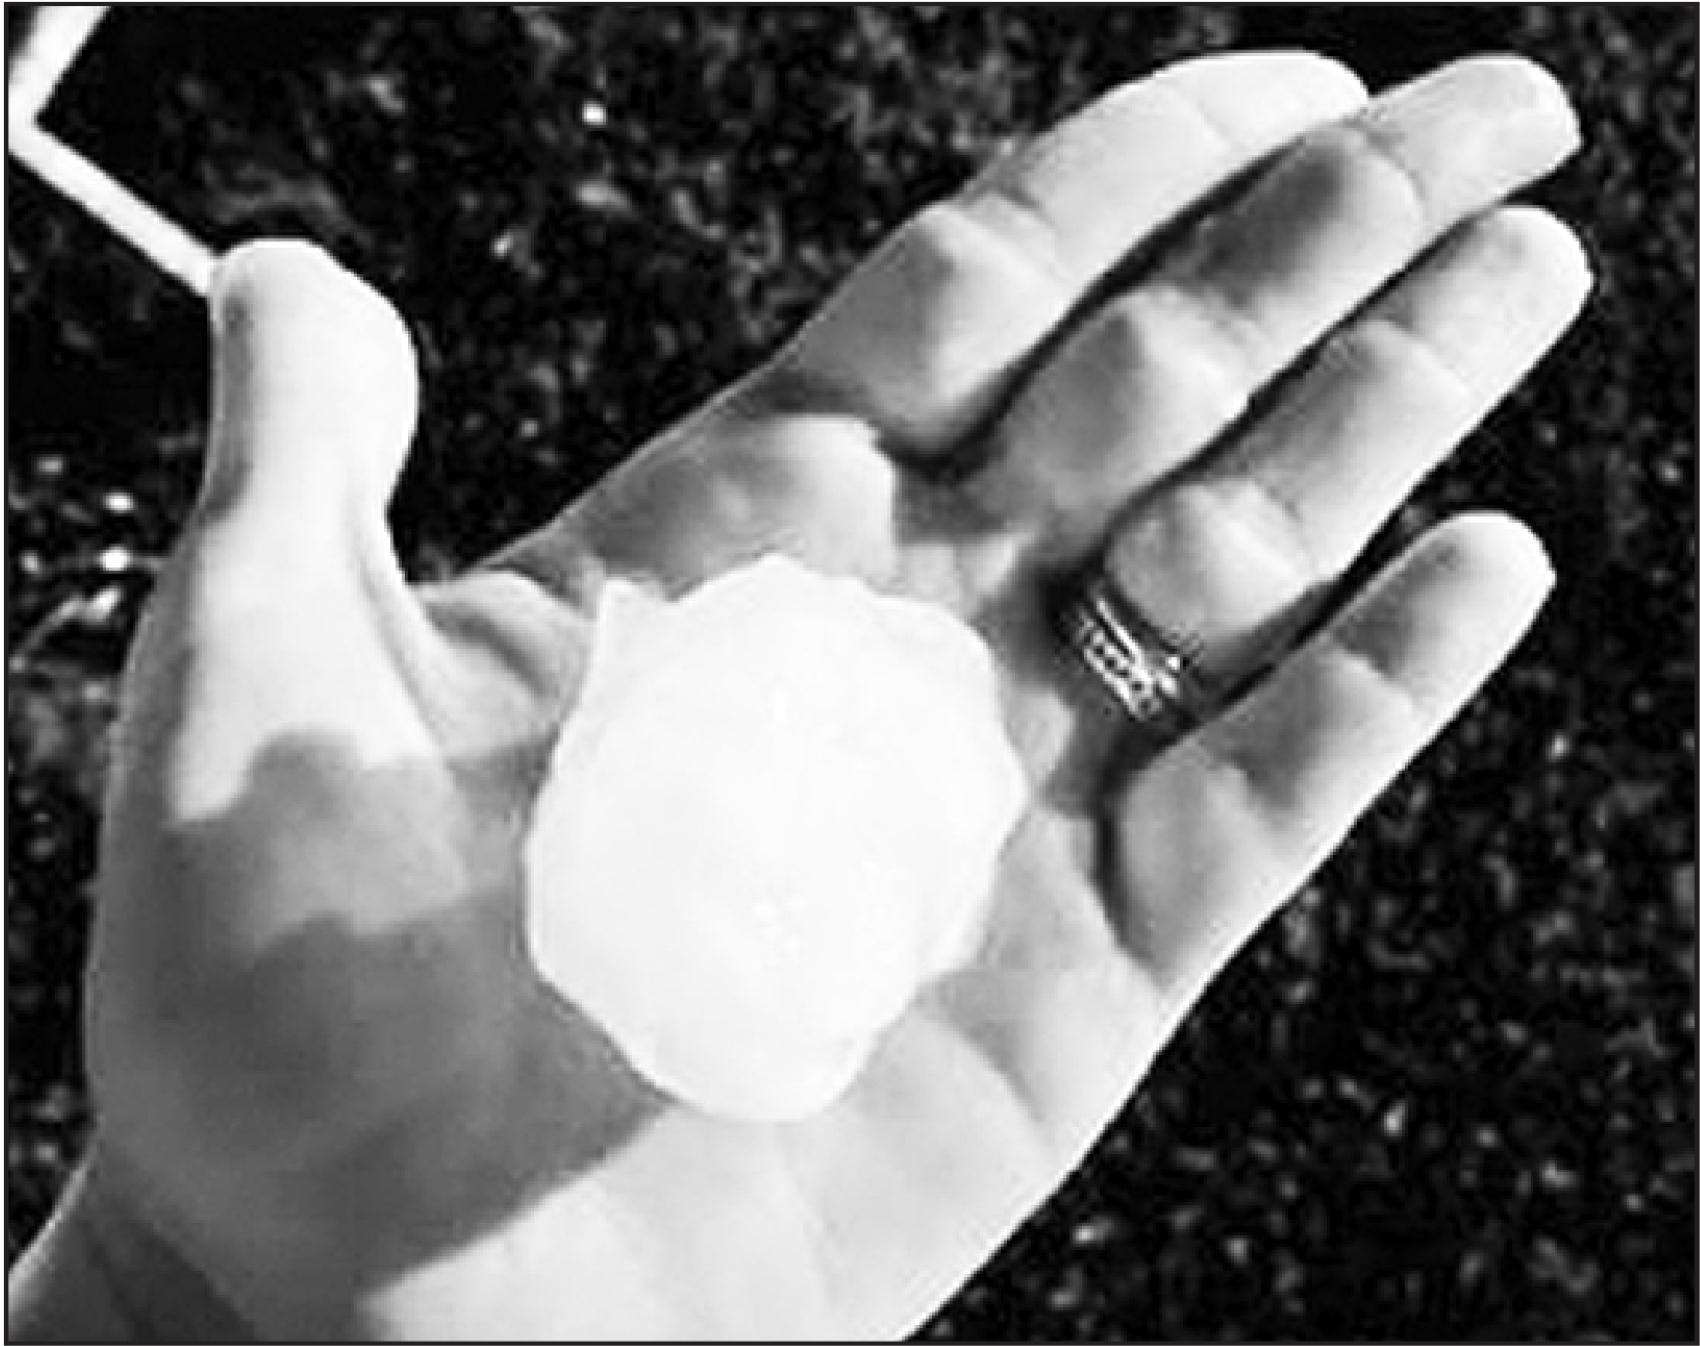 Republic County receives ping-pong sized hail after Friday's three rounds of storms they received with over 4 inches of rainfall.